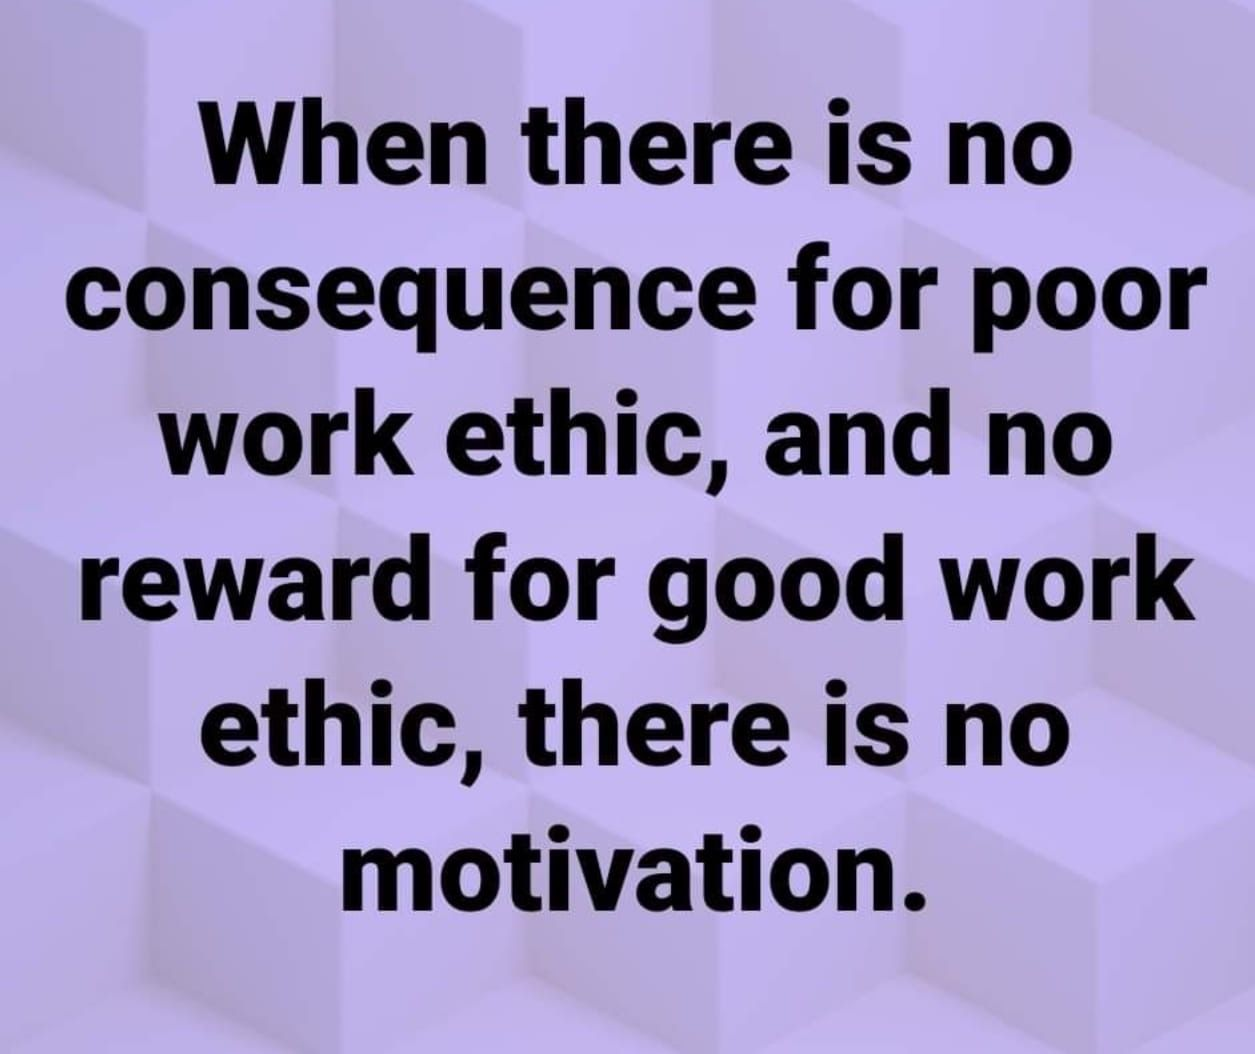 Pin By Stacey Smith On Leading Good Work Ethic Work Quotes Work Motivational Quotes